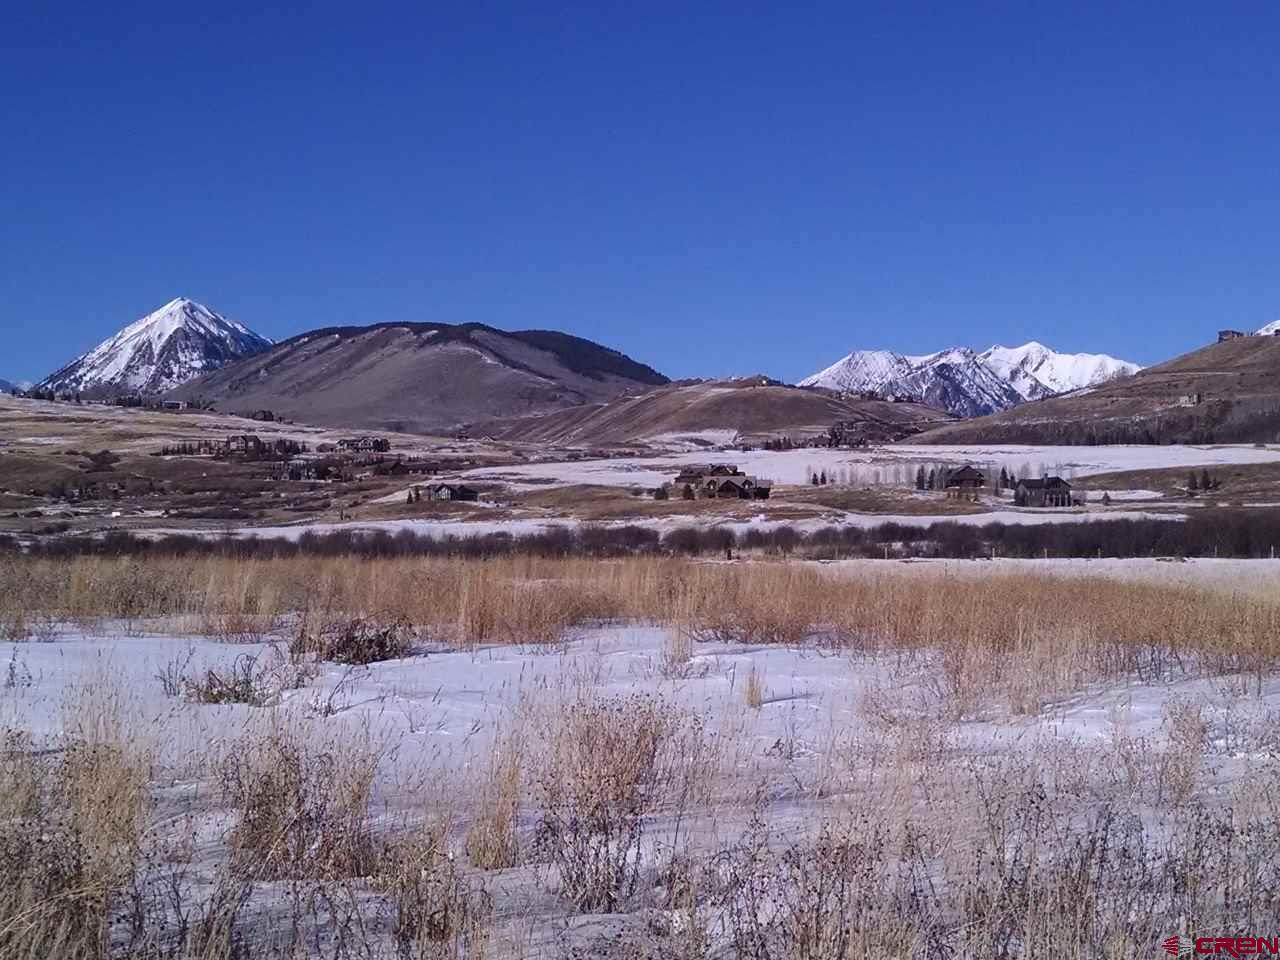 MLS# 757733 - 6 - 341 Mccormick Ranch Road, Crested Butte, CO 81224